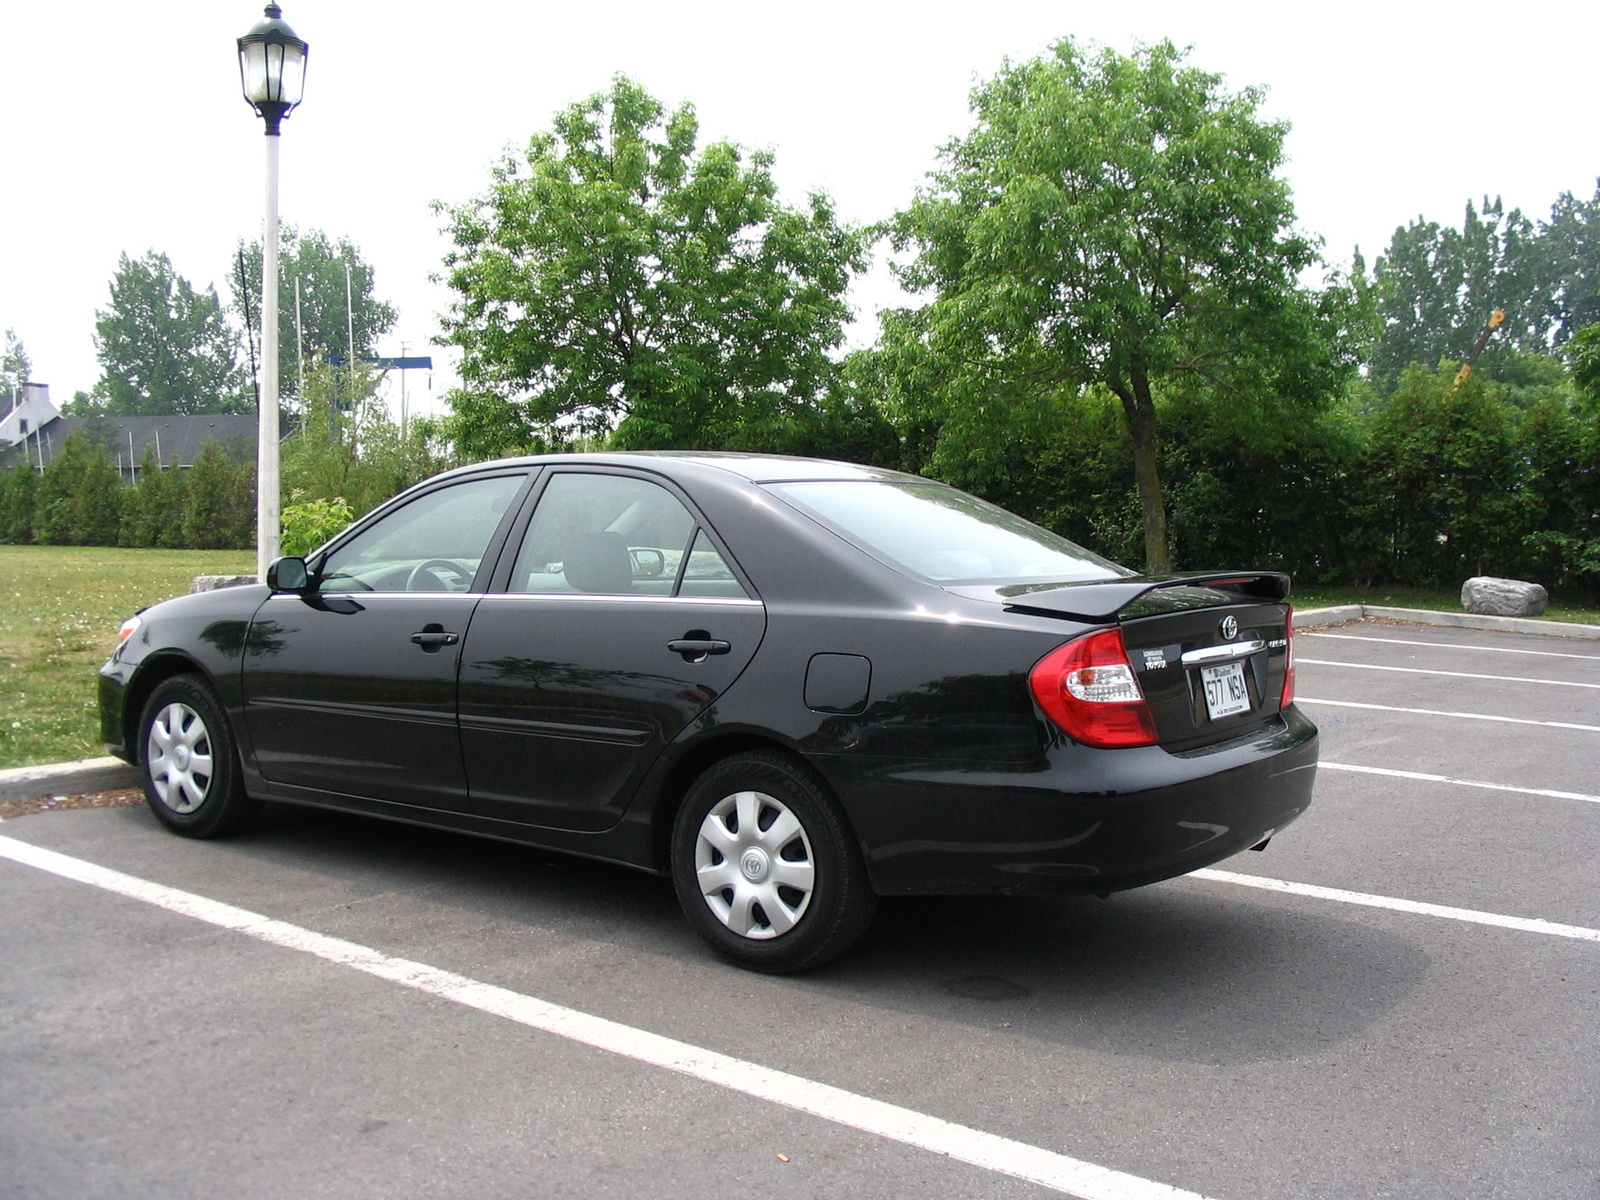 2002 toyota camry information and photos zombiedrive 2002 toyota camry repair manual pdf 2002 toyota camry repair manual